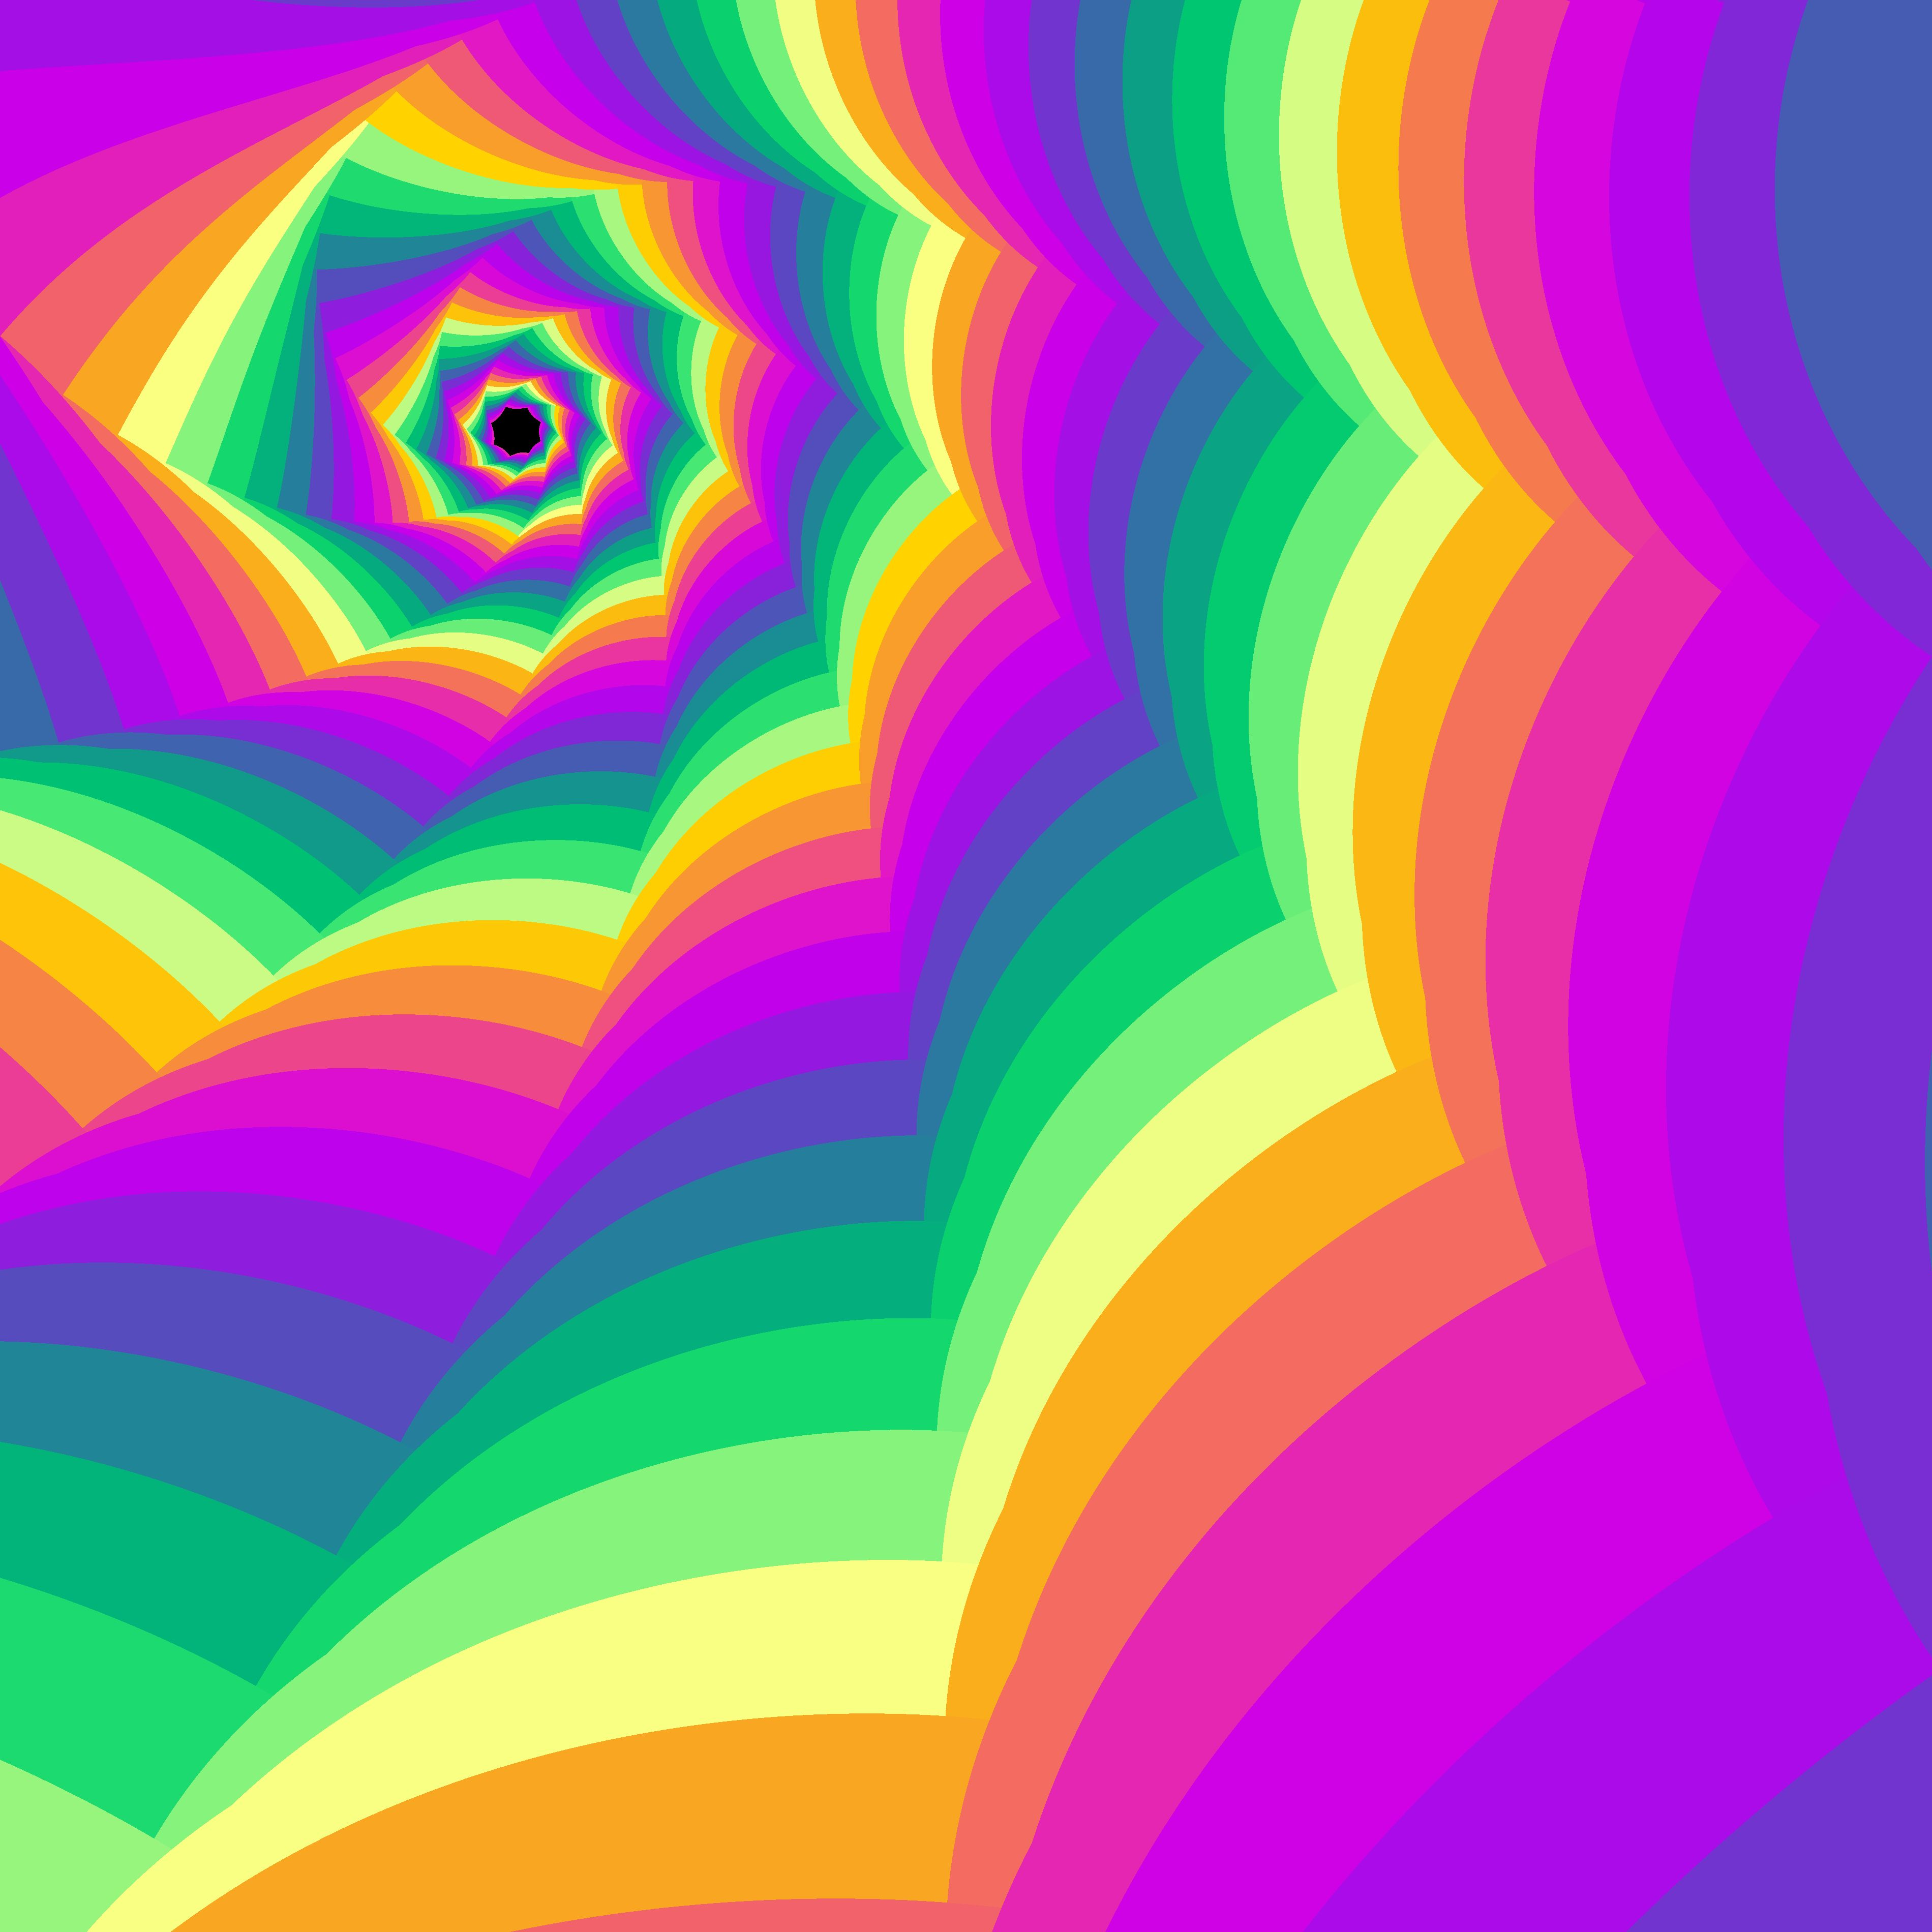 Rainbow spiral 2358 stockarch free stock photos for Arcobaleno design